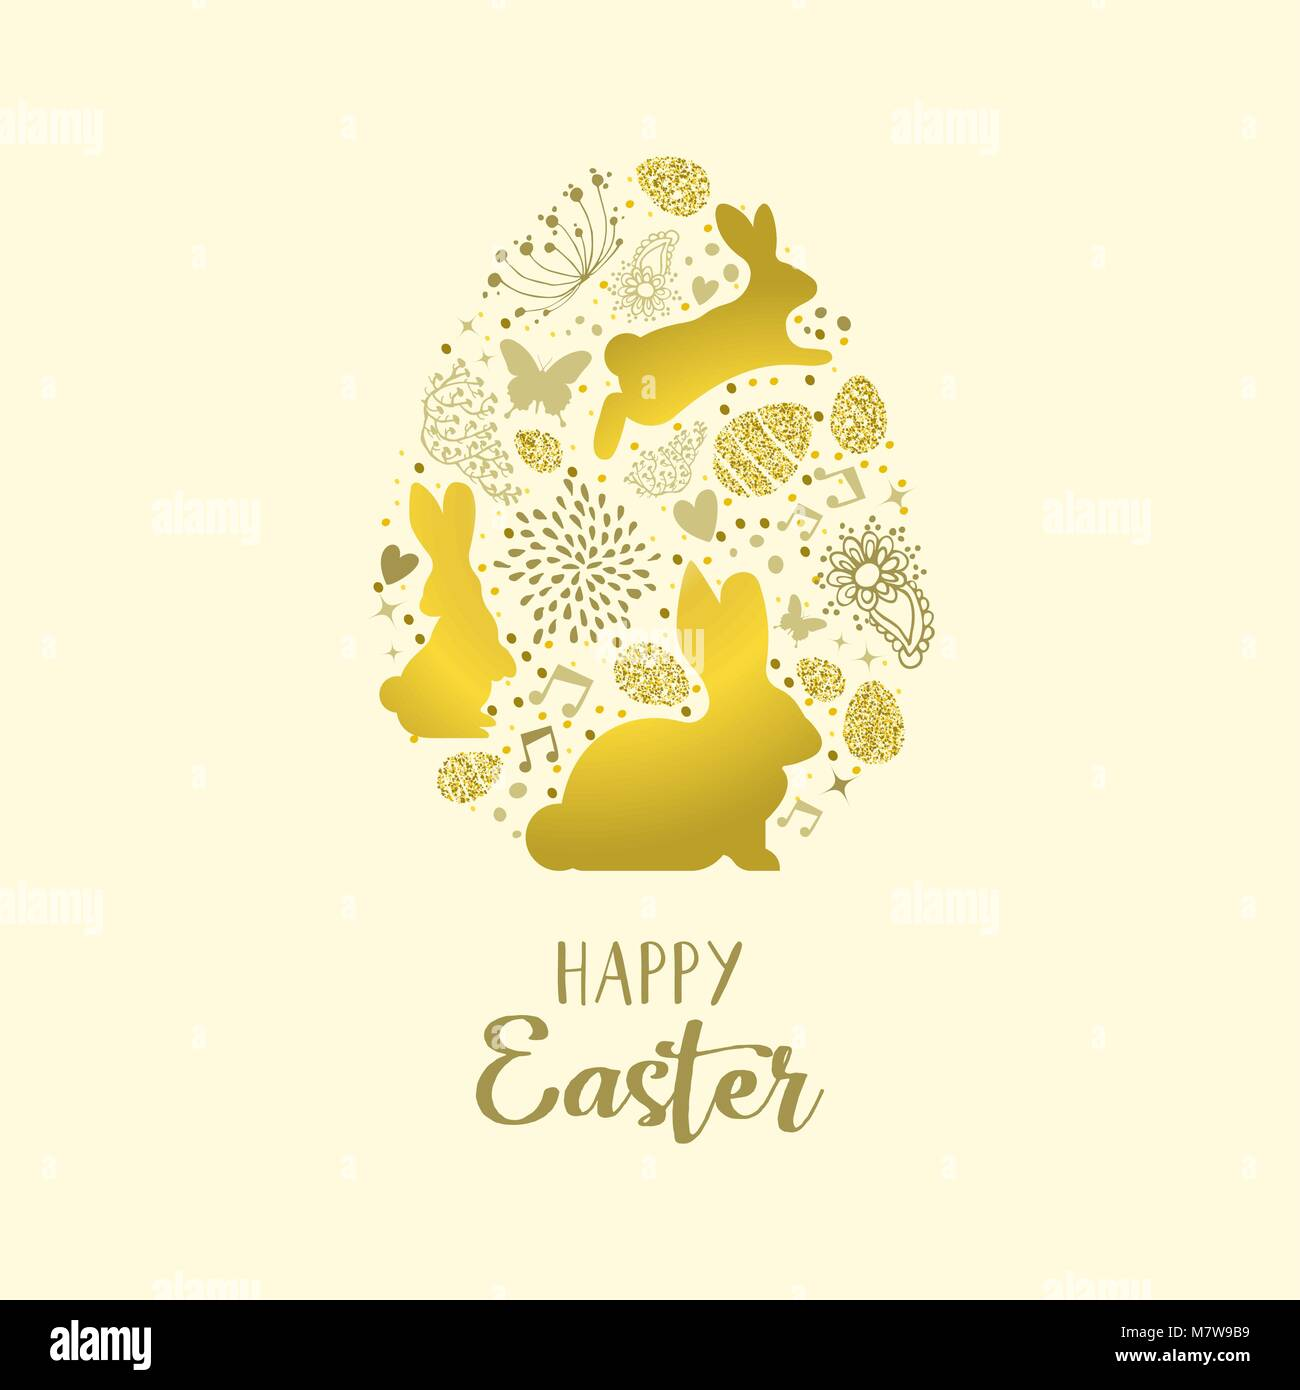 Happy easter holiday greeting card with gold glitter icons in egg happy easter holiday greeting card with gold glitter icons in egg stock vector art illustration vector image 176962445 alamy kristyandbryce Images